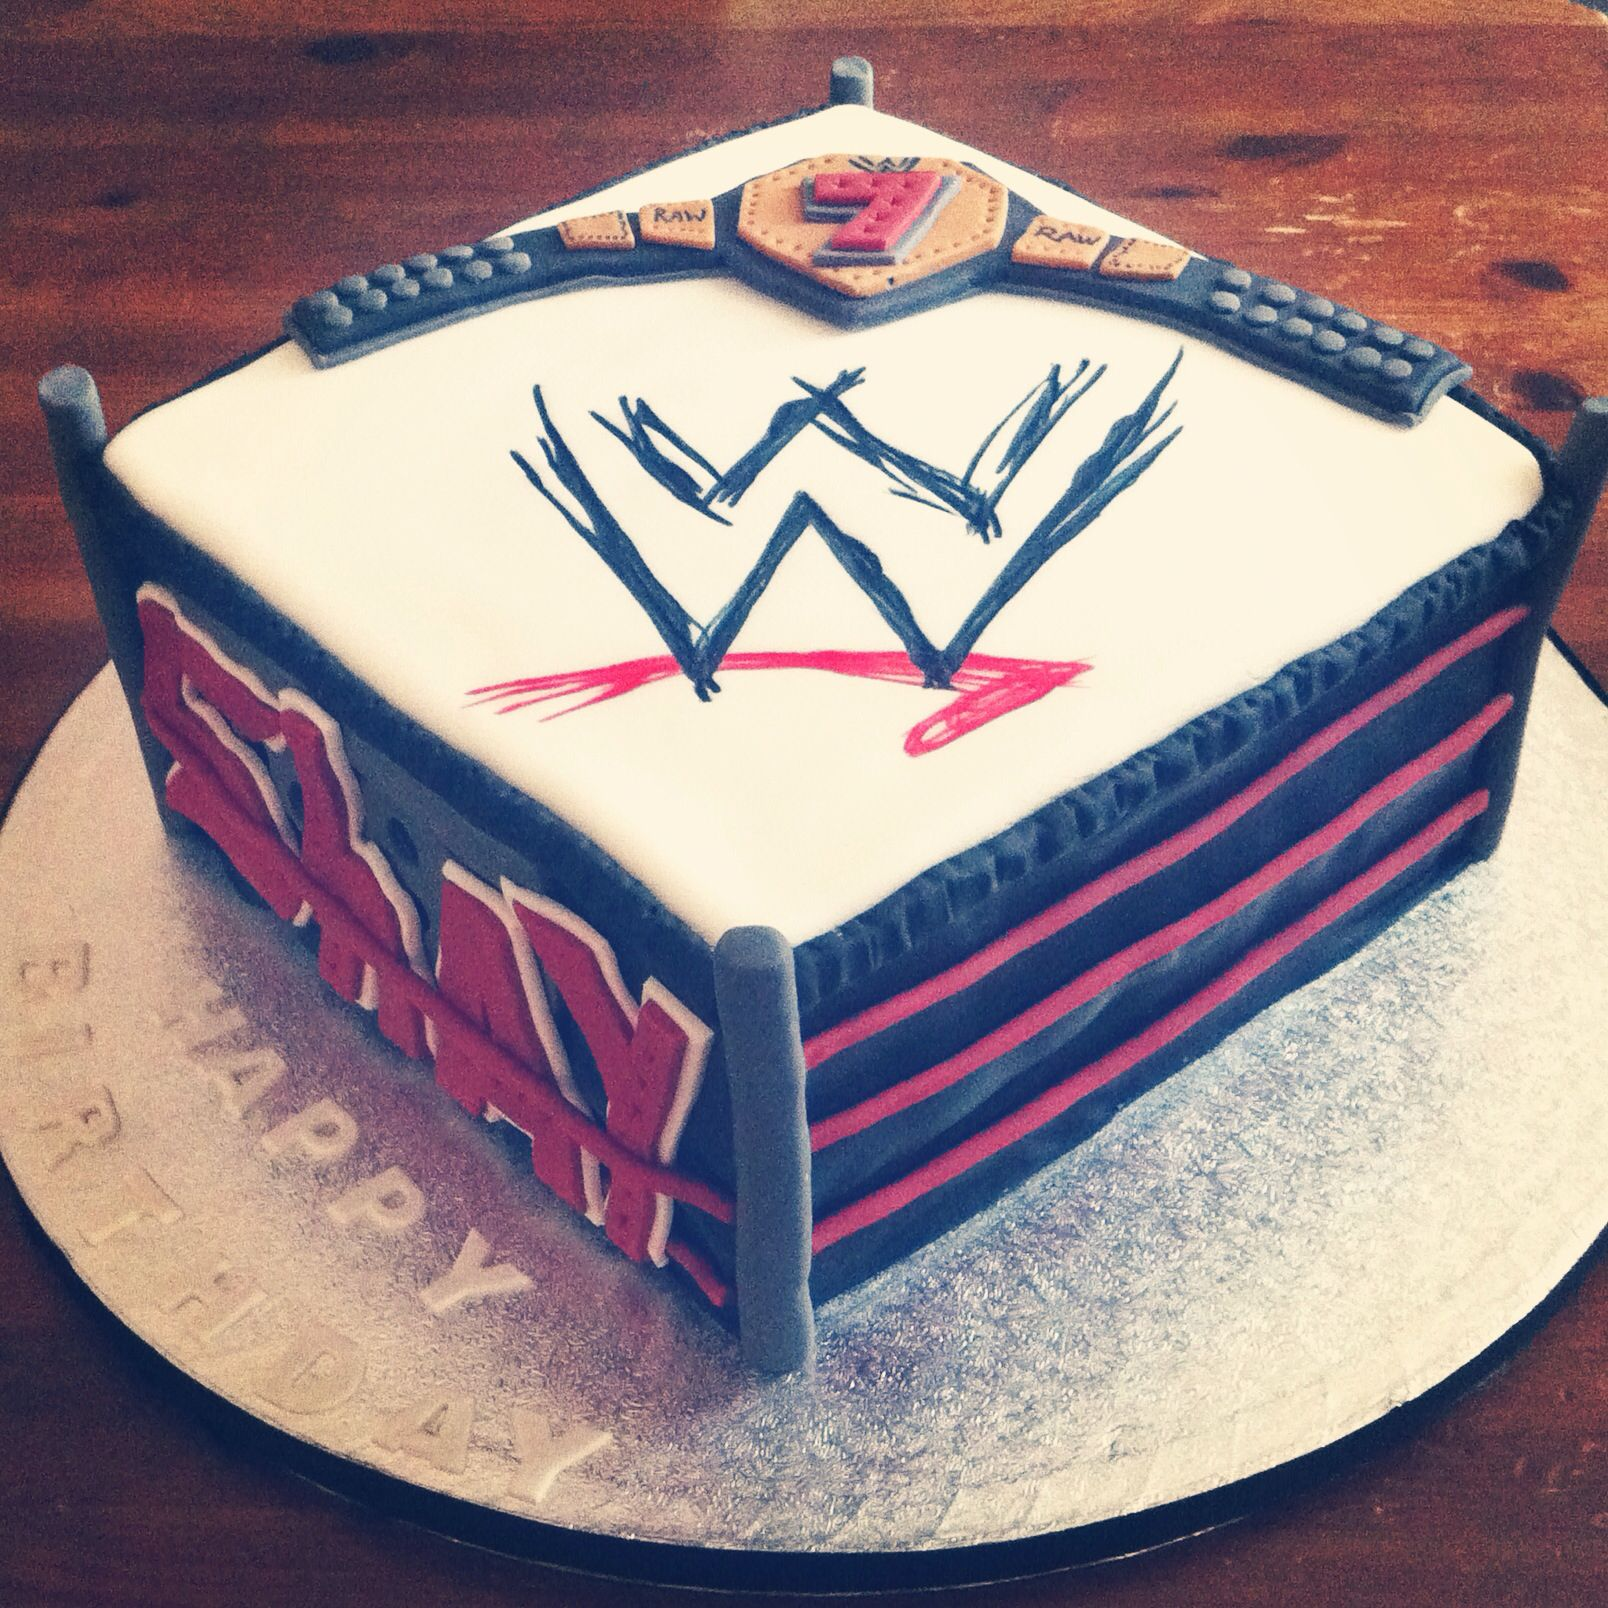 Wwf Wrestling Ring Cake With Belt Nai Nai Nais Cake Creations